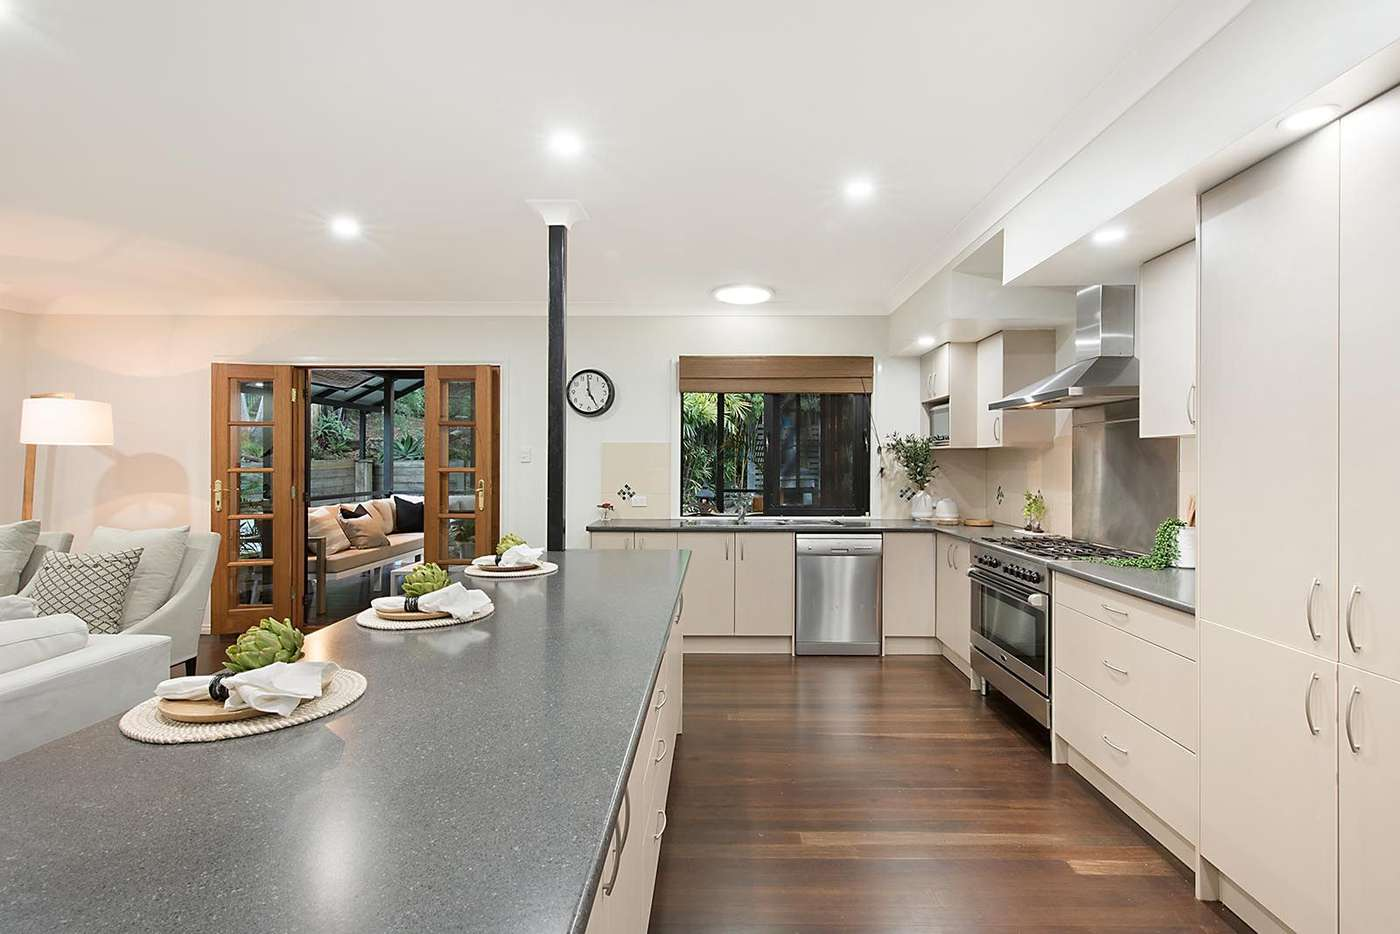 Sixth view of Homely house listing, 25 Gosford Street, Mount Gravatt QLD 4122